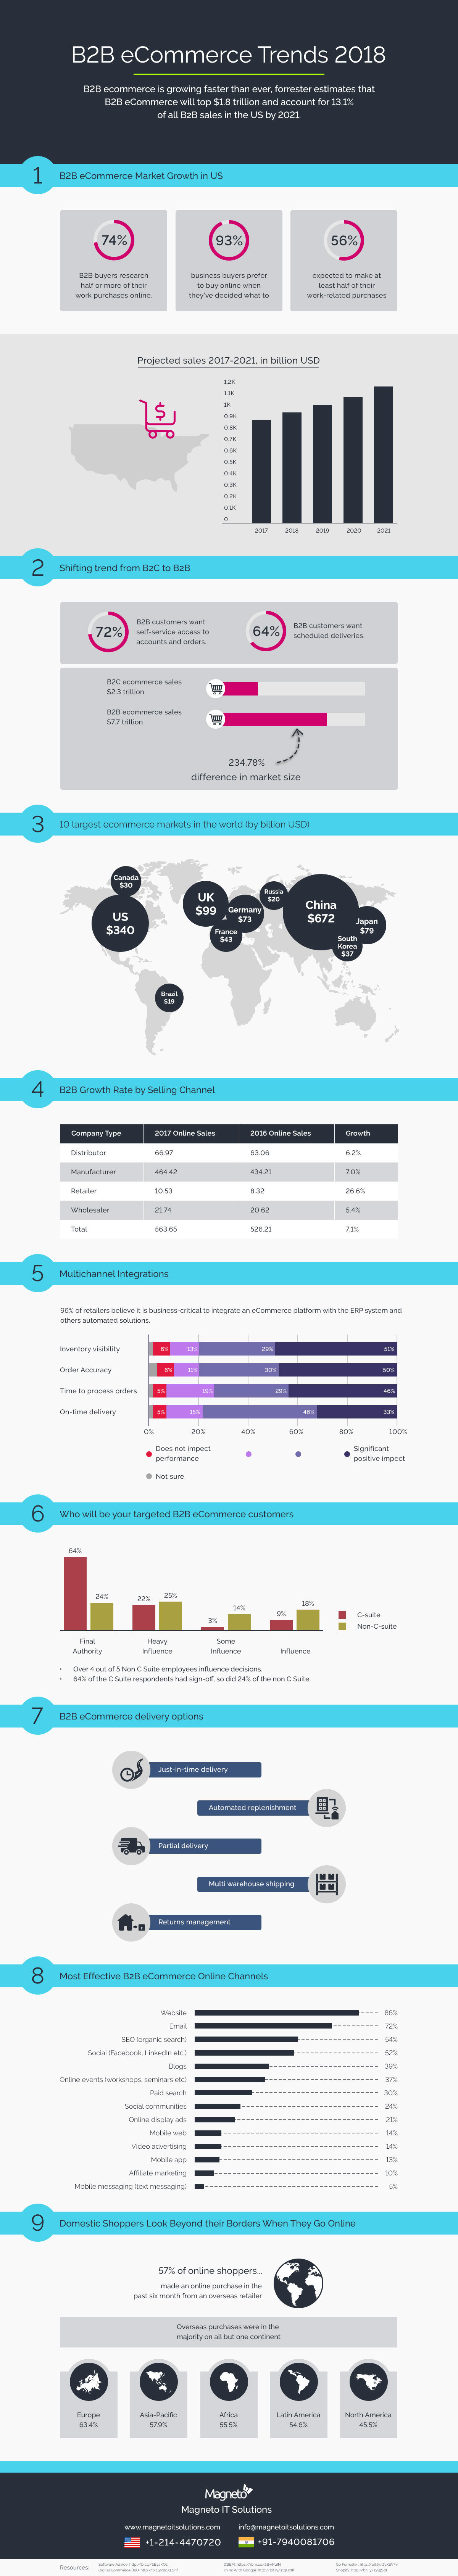 B2B E-commerce Trends & Statistics of 2018 That You Must Know